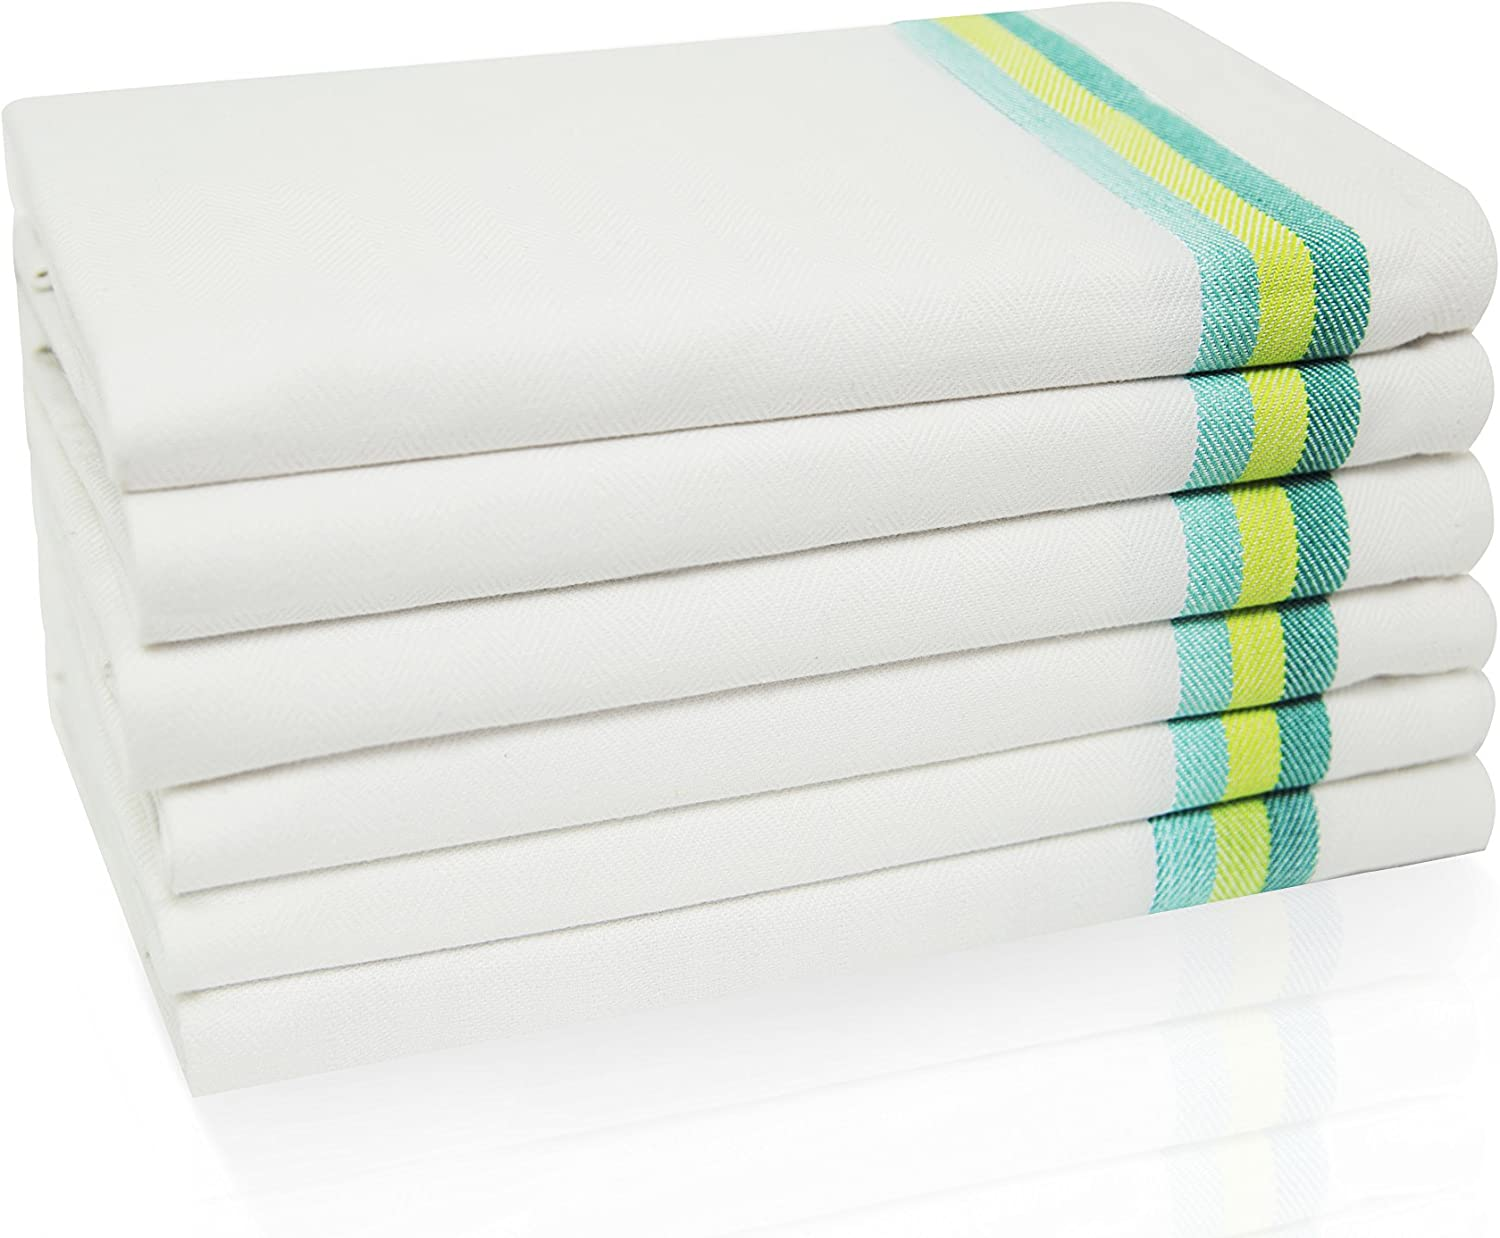 "Harringdons Kitchen Dish Towels Set of 6 - Tea Towels, 100% Cotton. Large Dish Cloths 28""x20"" Soft and Absorbent. White with Green Stripes. Add Beauty to Kitchen Life."